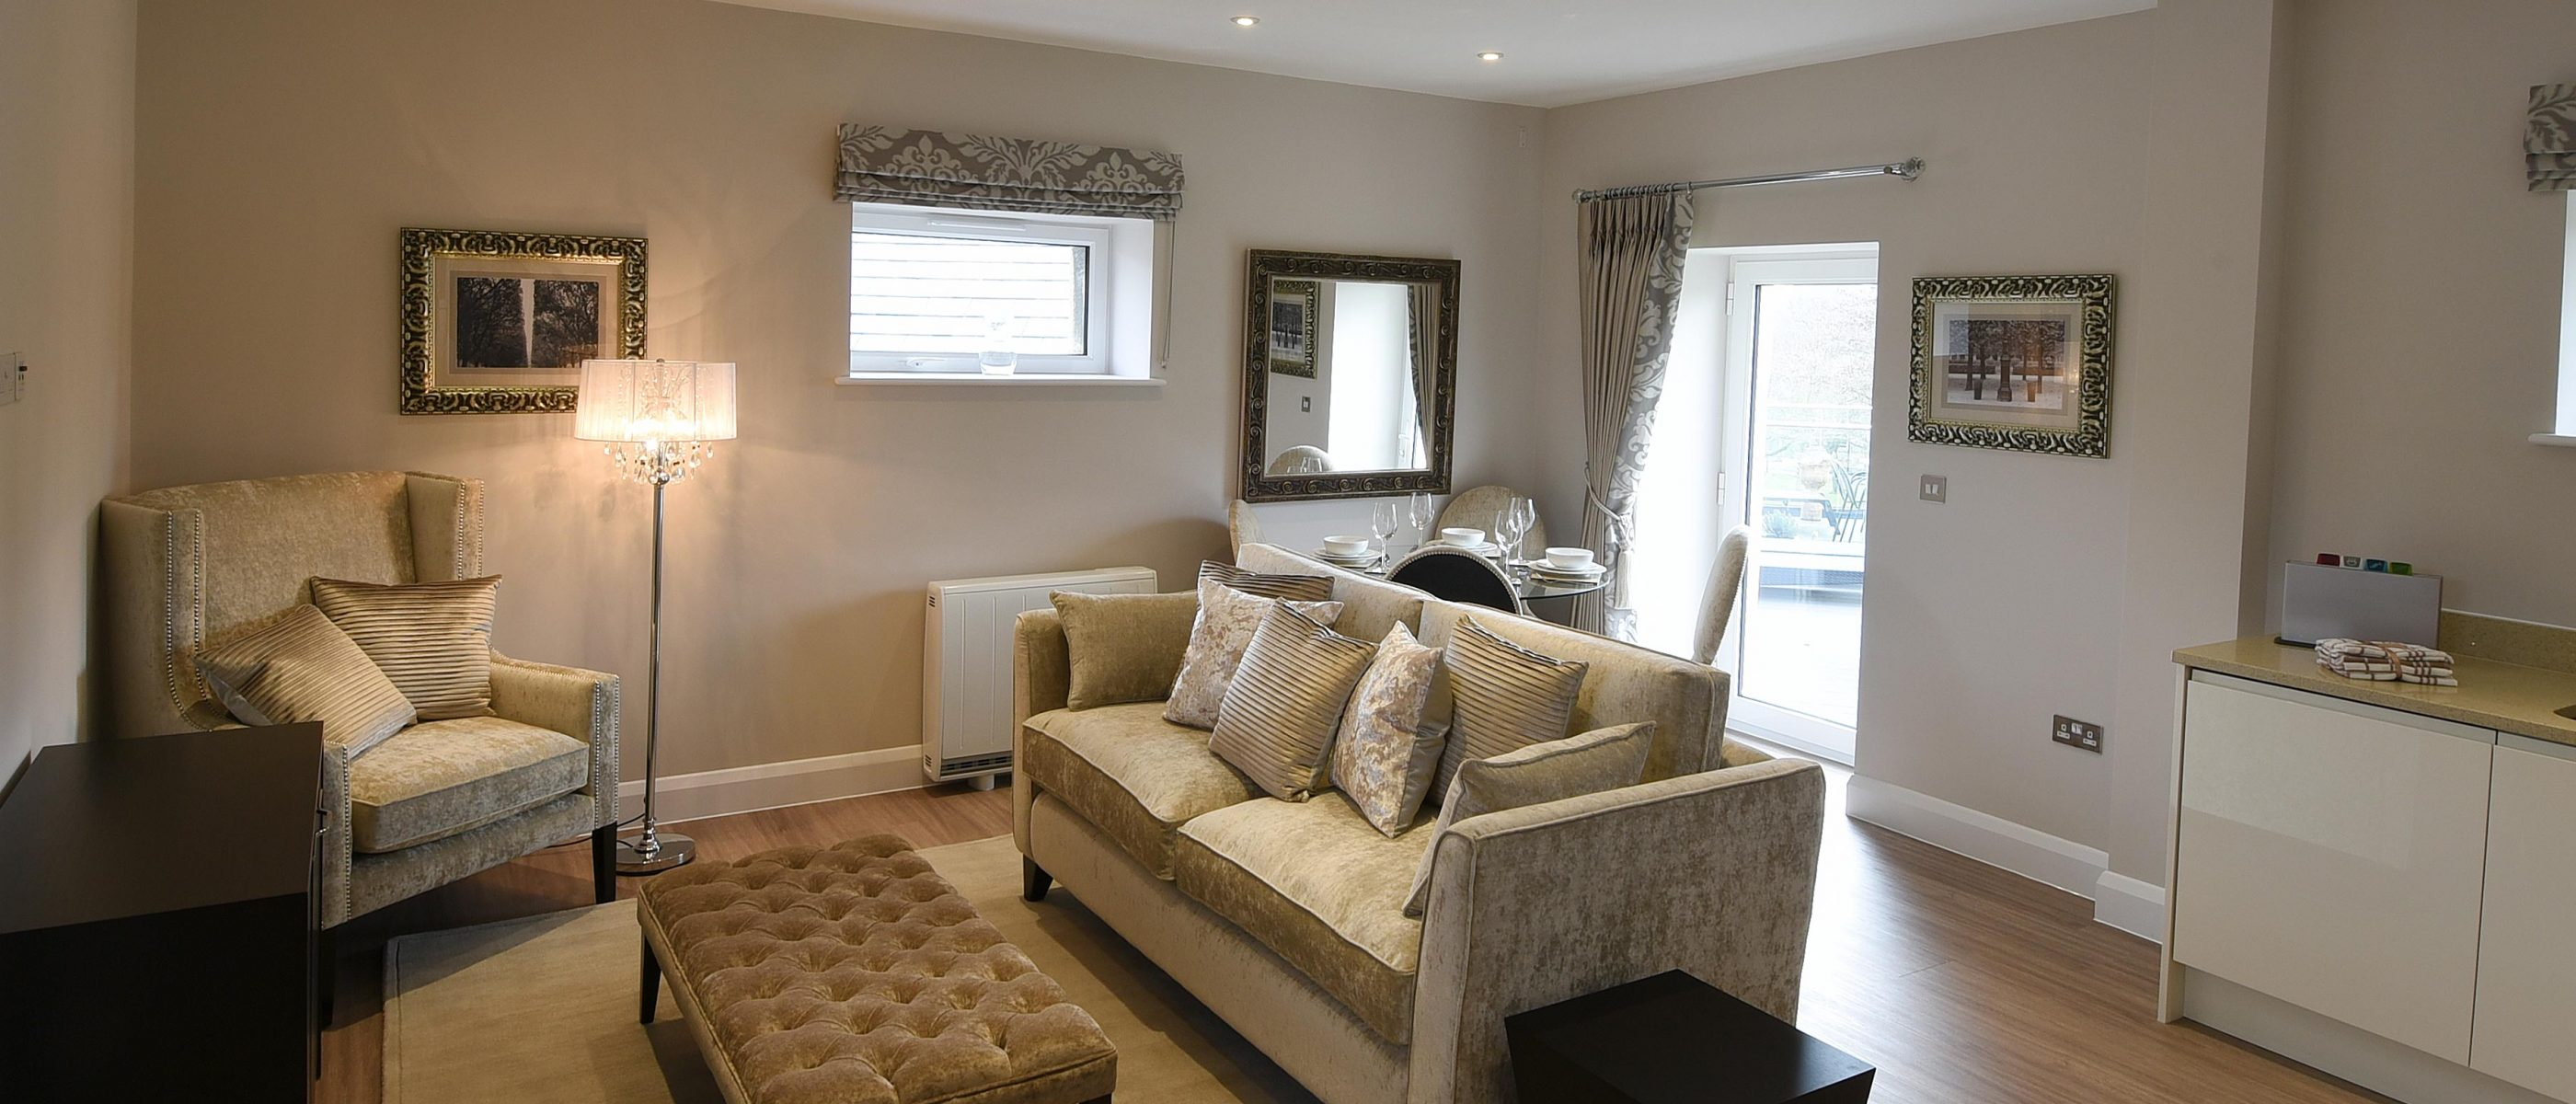 Living area in the Roysse Suite: a one bedroom luxury serviced apartment at The Old Gaol, by the River Thames in Abingdon, near Oxford. Ideal accommodation for corporate or holiday short lets